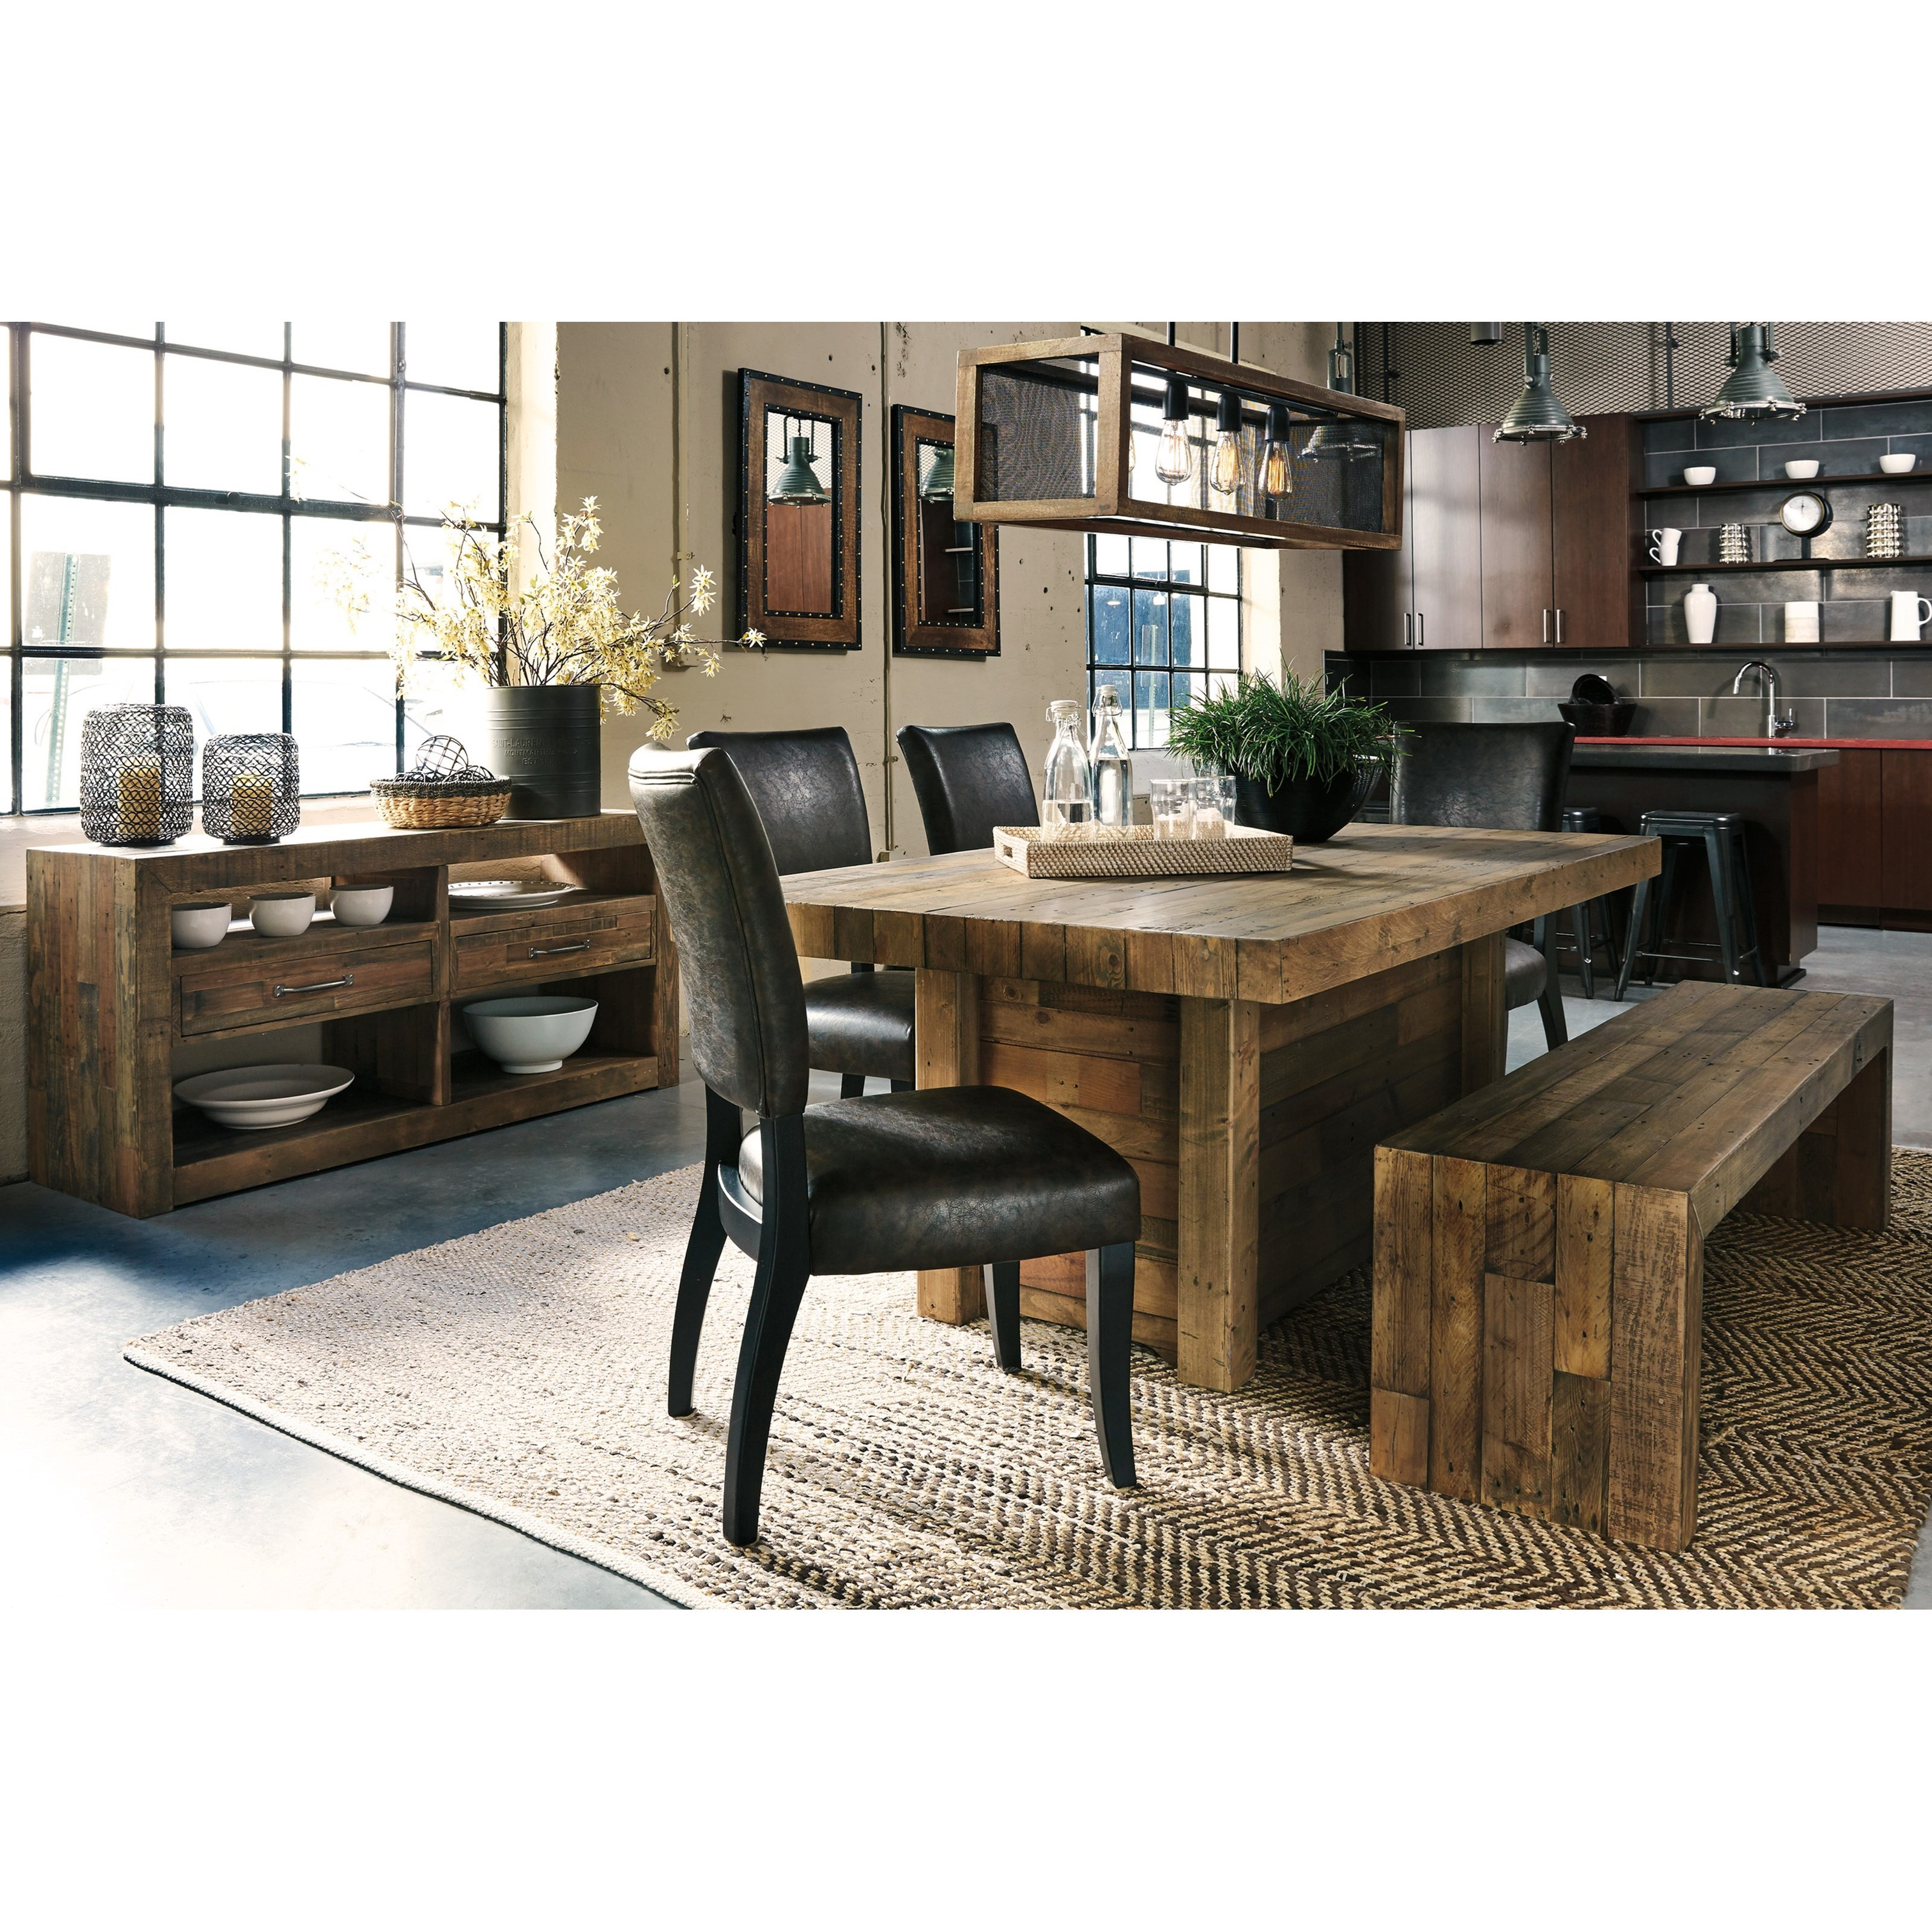 Signature design by ashley sommerford d775 09 large dining for Ashley furniture appleton